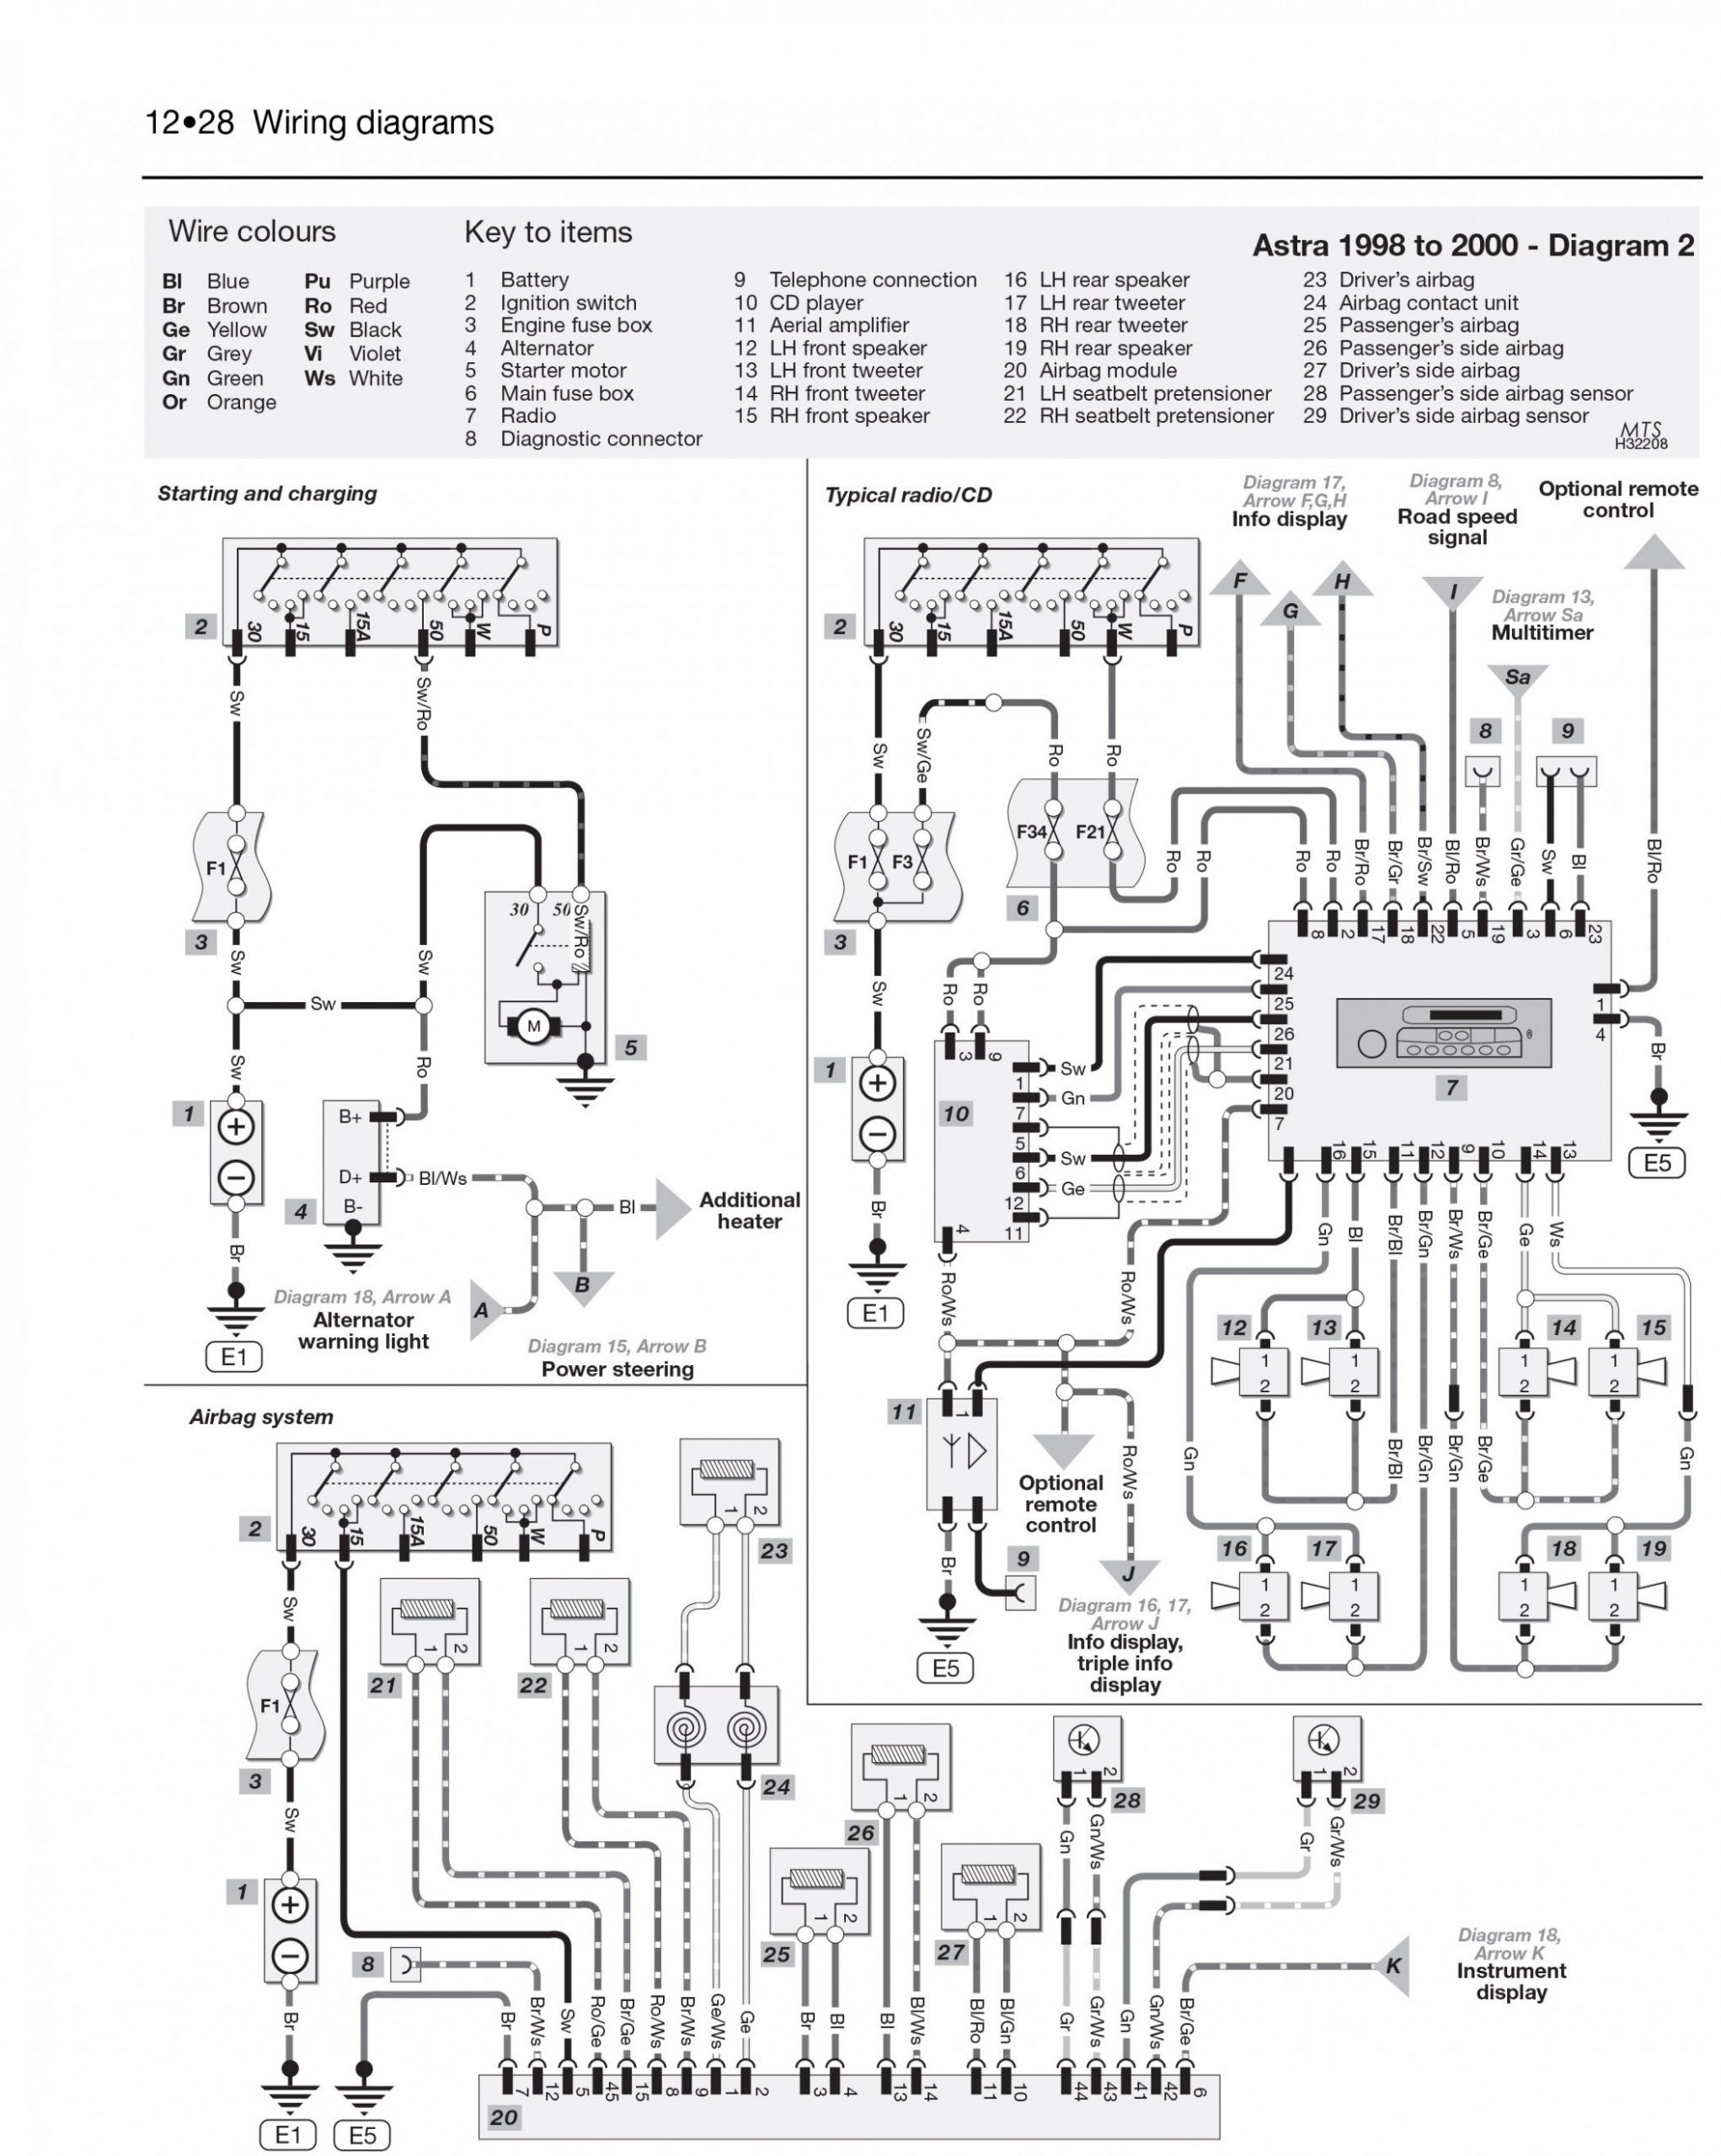 5a5 Corsa C Fog Light Wiring Diagram Wiring Resources Opel Corsa Lite Engine Diagram Download Di 2020